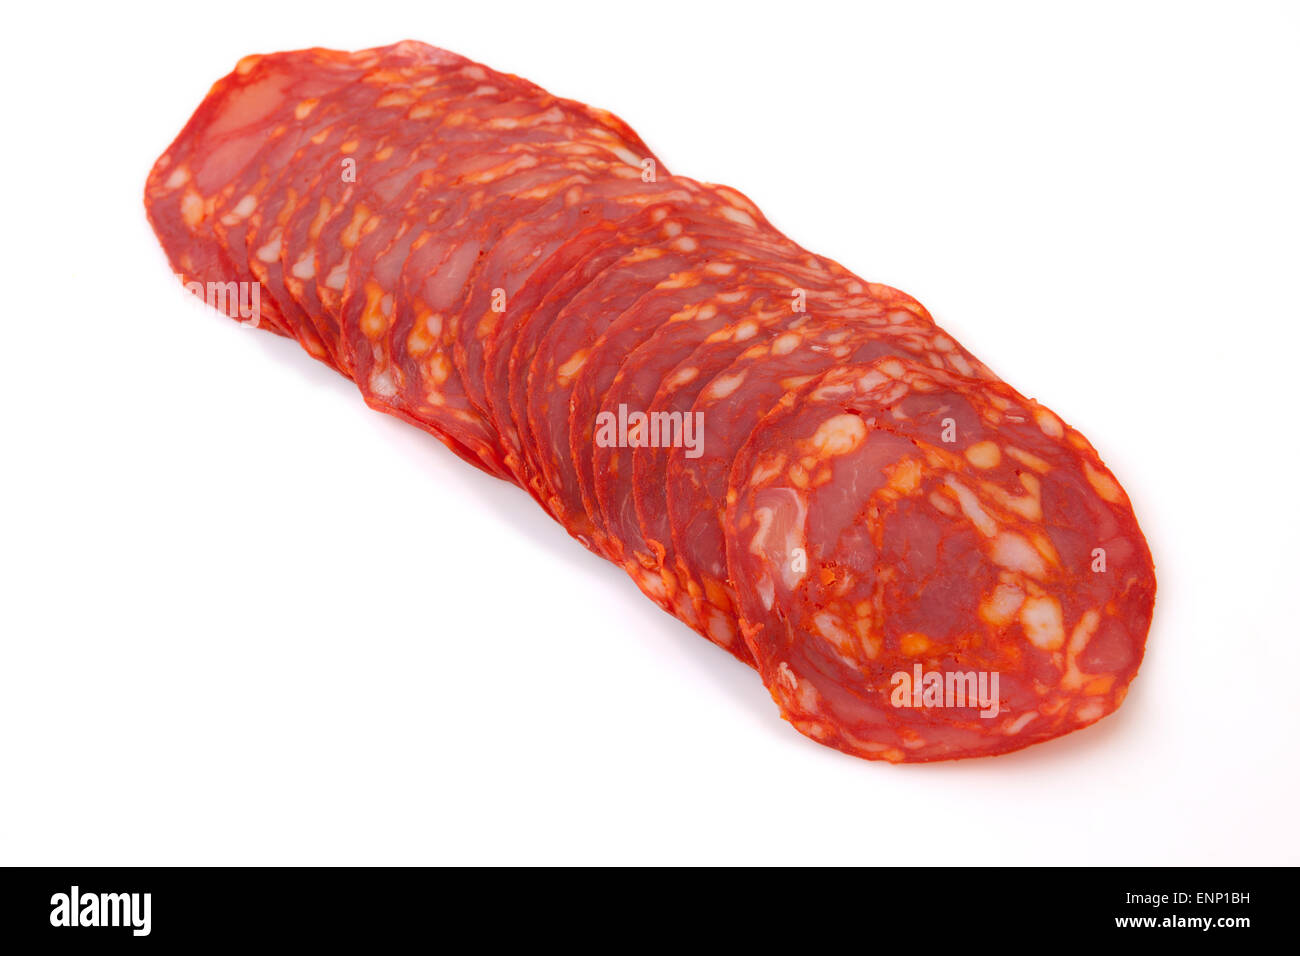 Some cut slices of red iberian chorizo. Isolated over white background - Stock Image